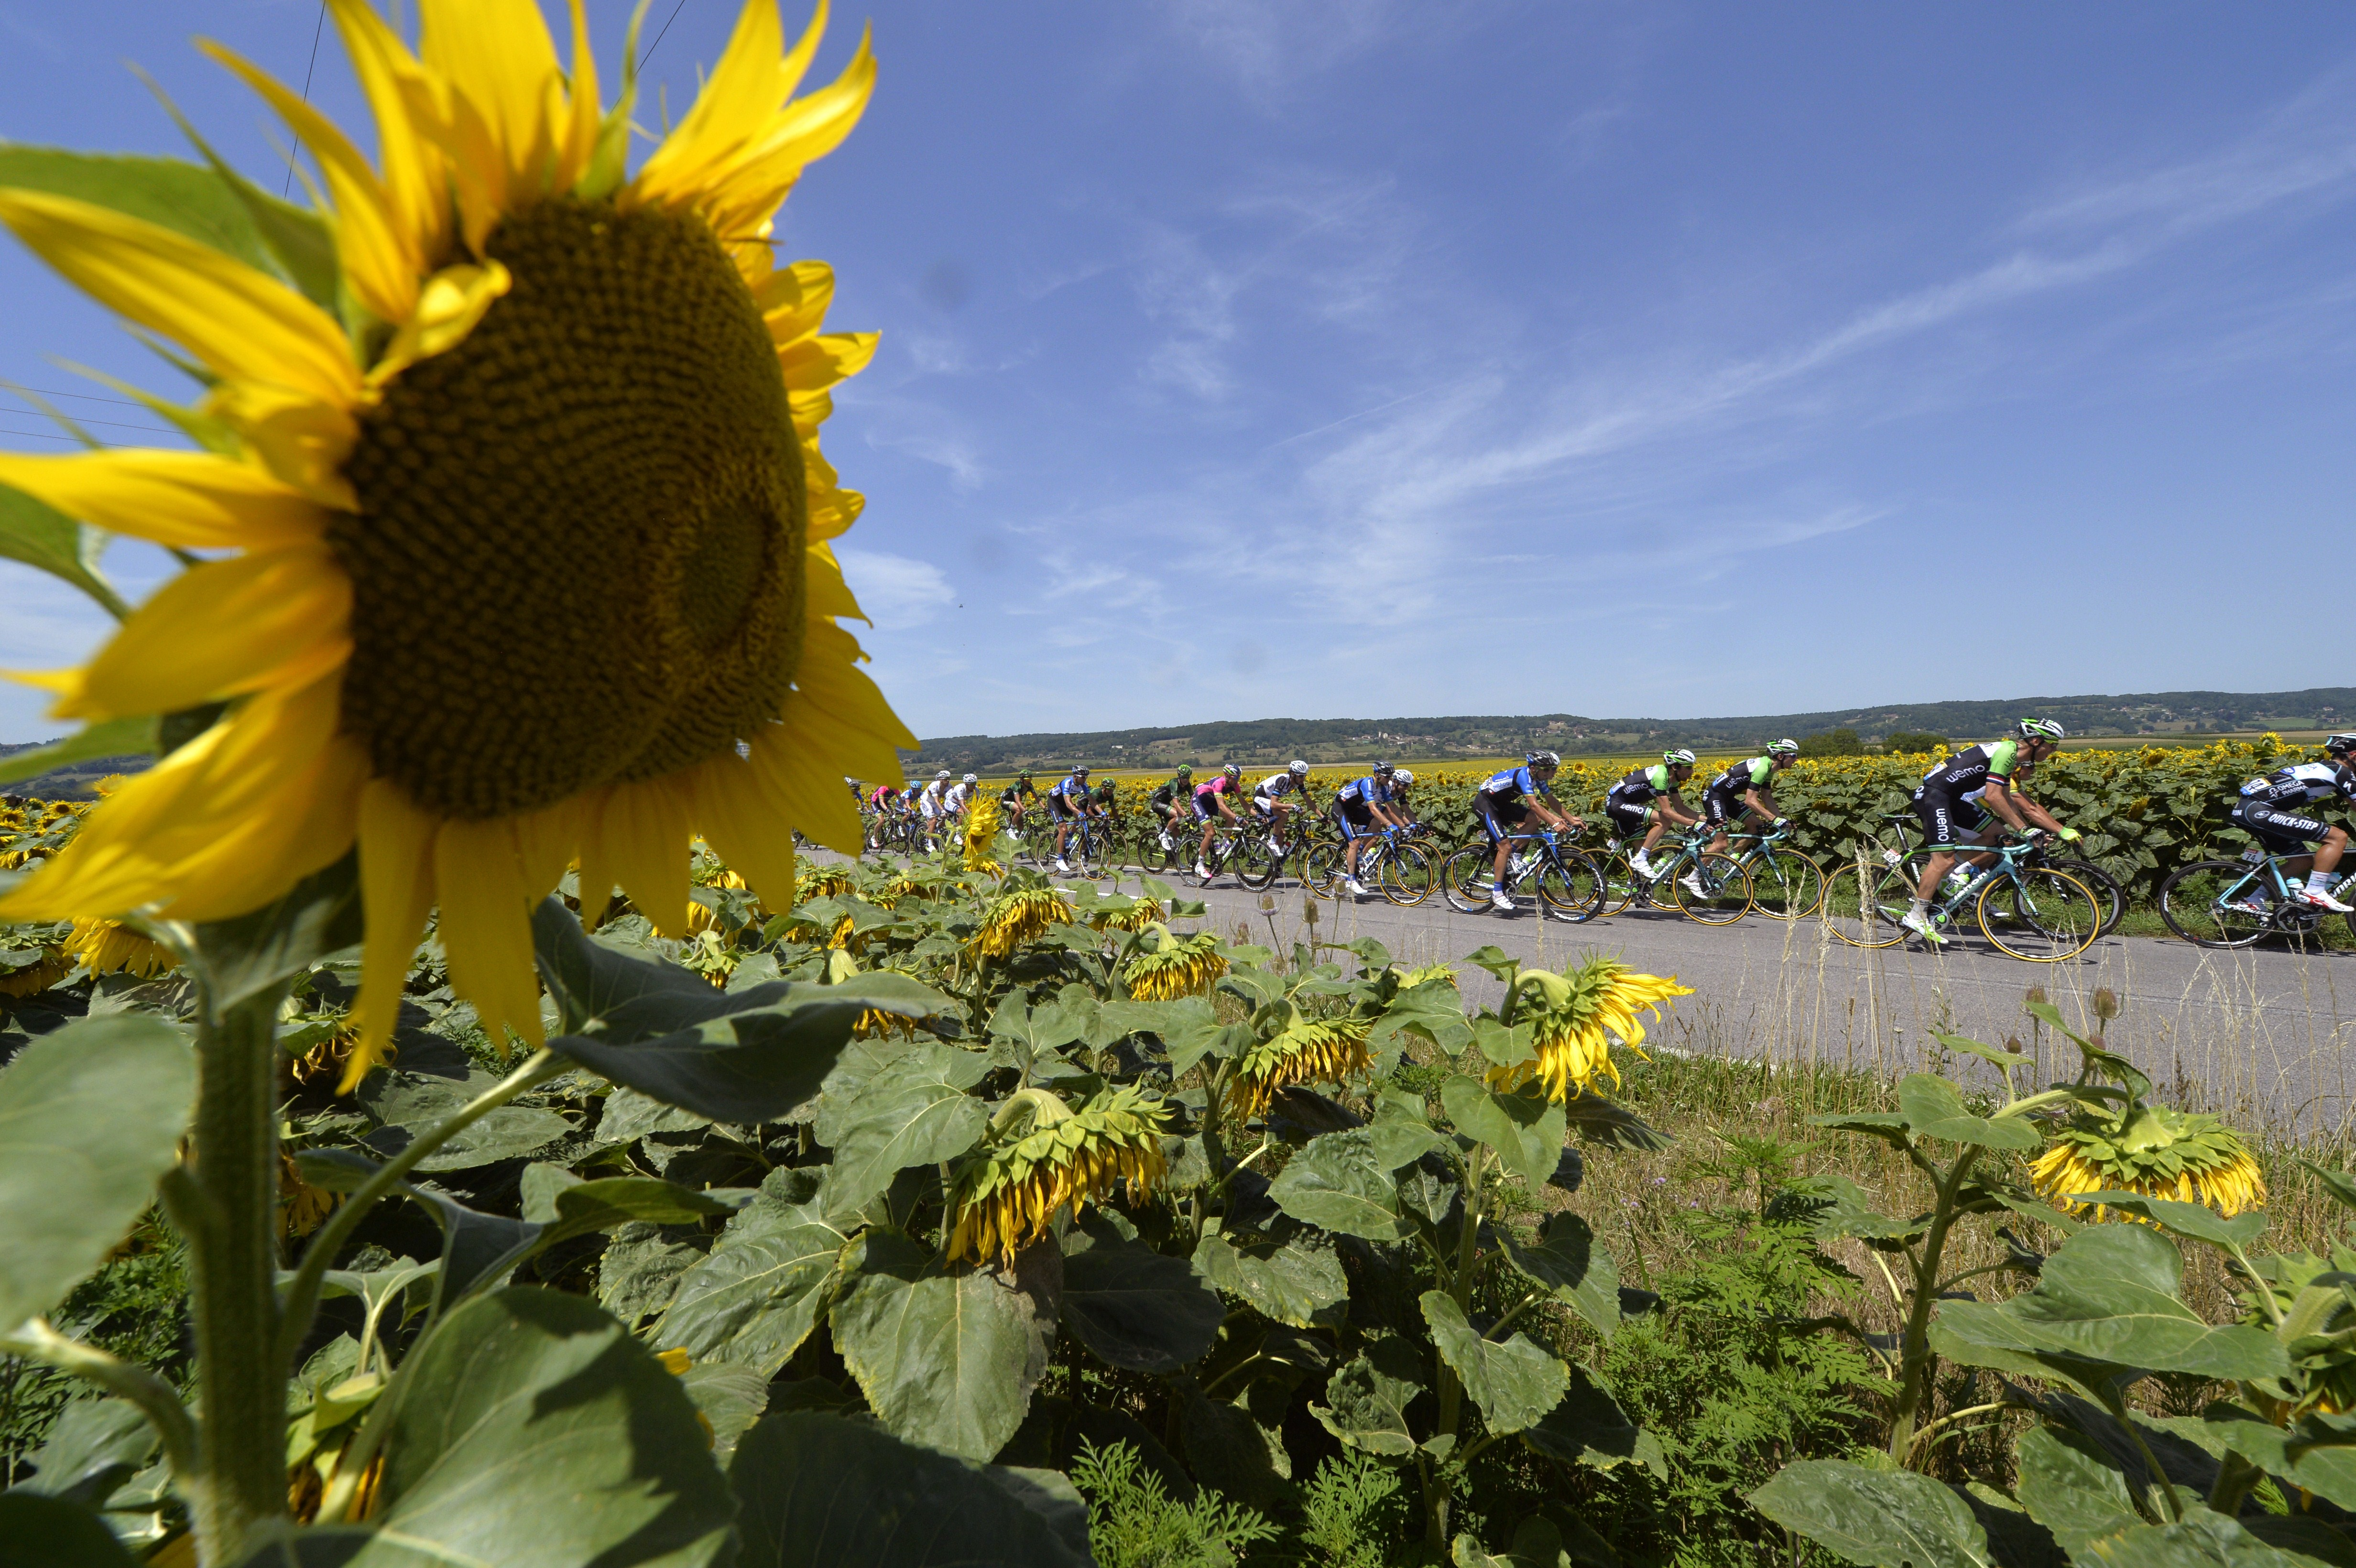 The pack rides past a sunflowers field during the 197.5 km thirteenth stage of the 101st edition of the Tour de France.